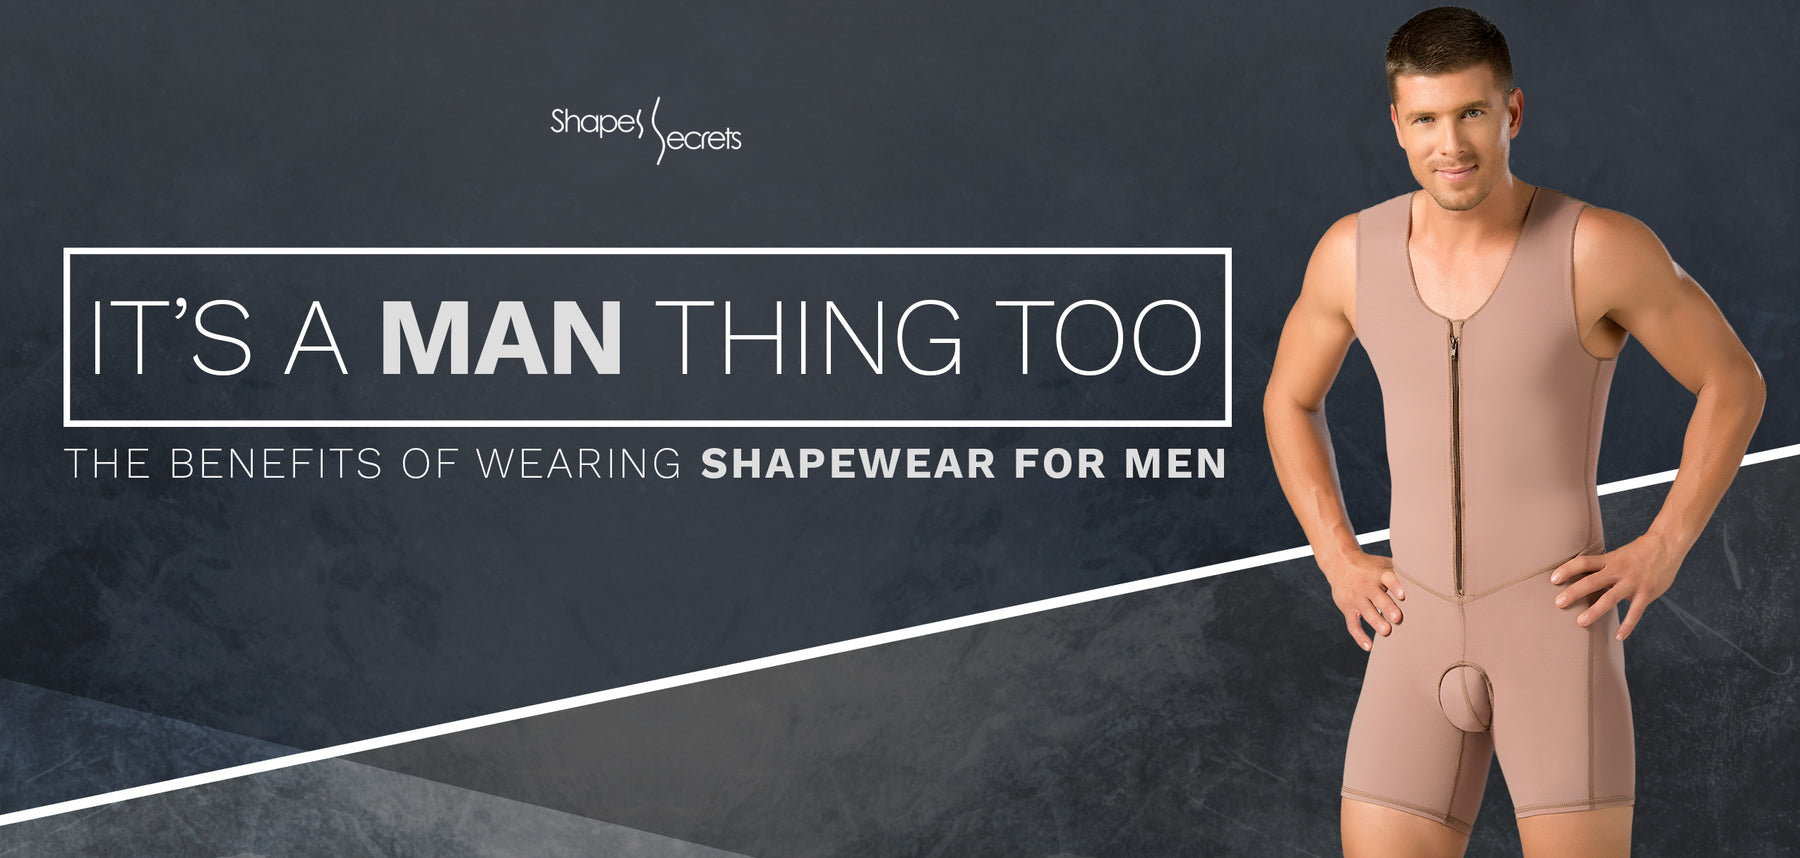 Shapes Secrets - Men's Shapewear